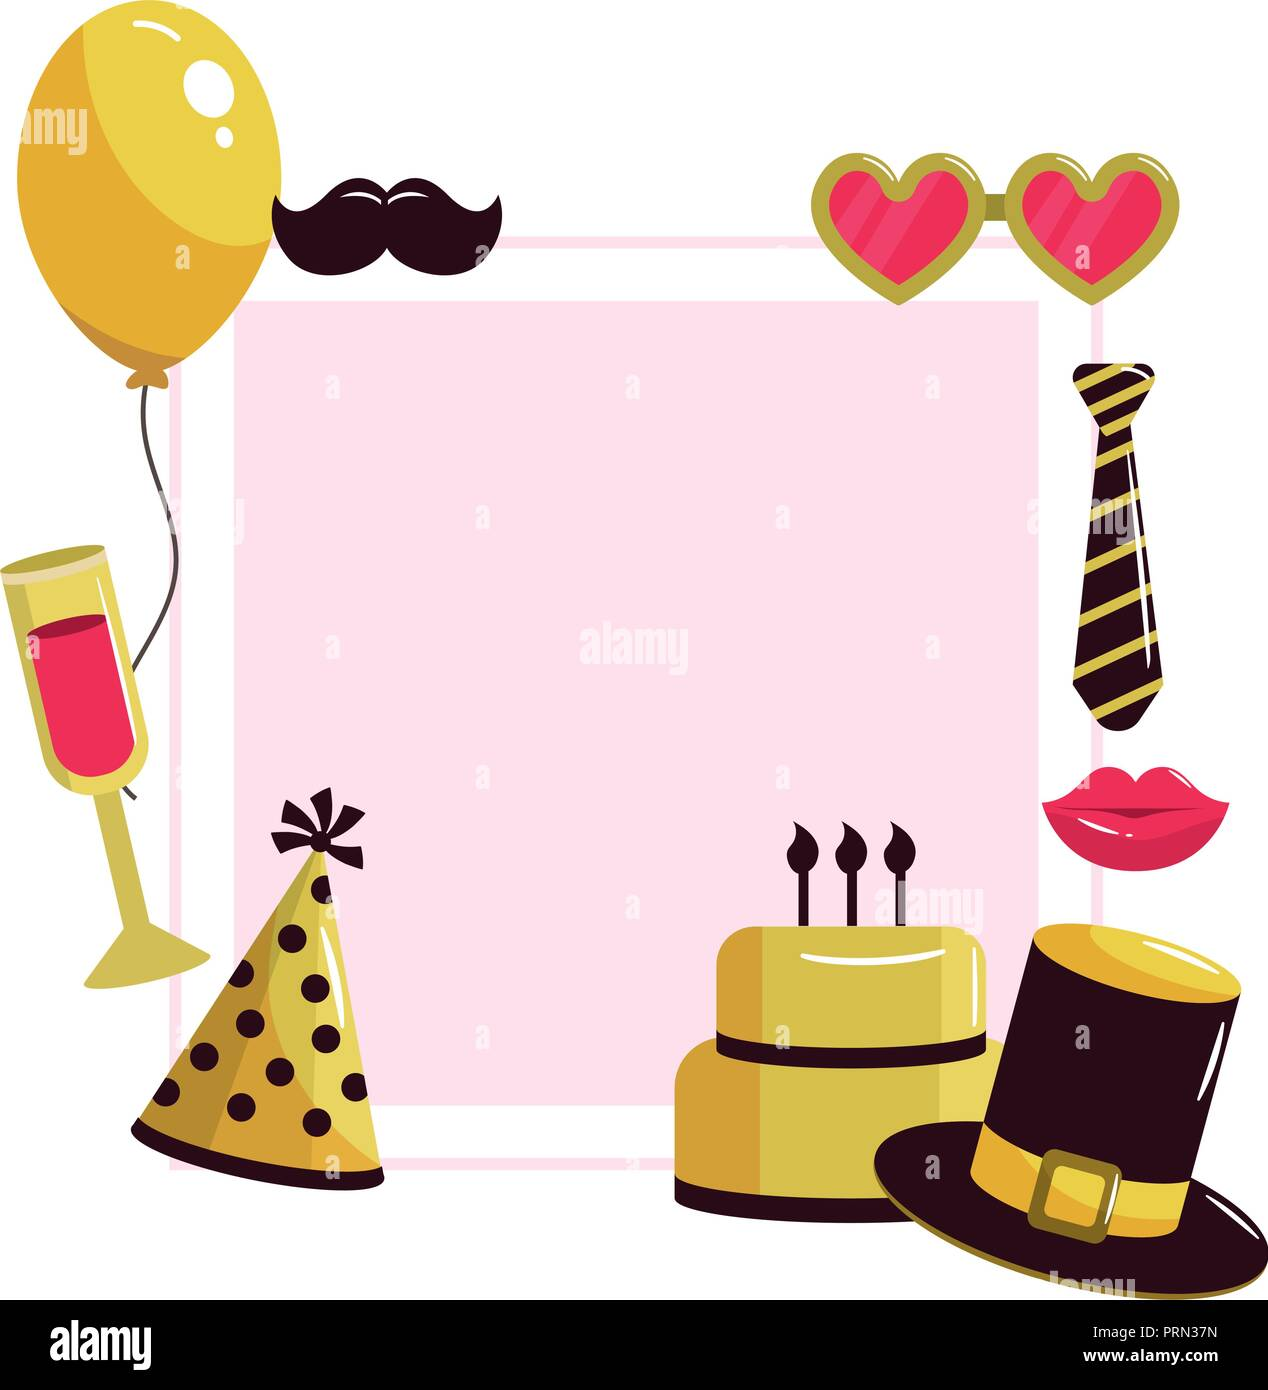 Happy Birthday Frame Stock Vector Art Illustration Vector Image